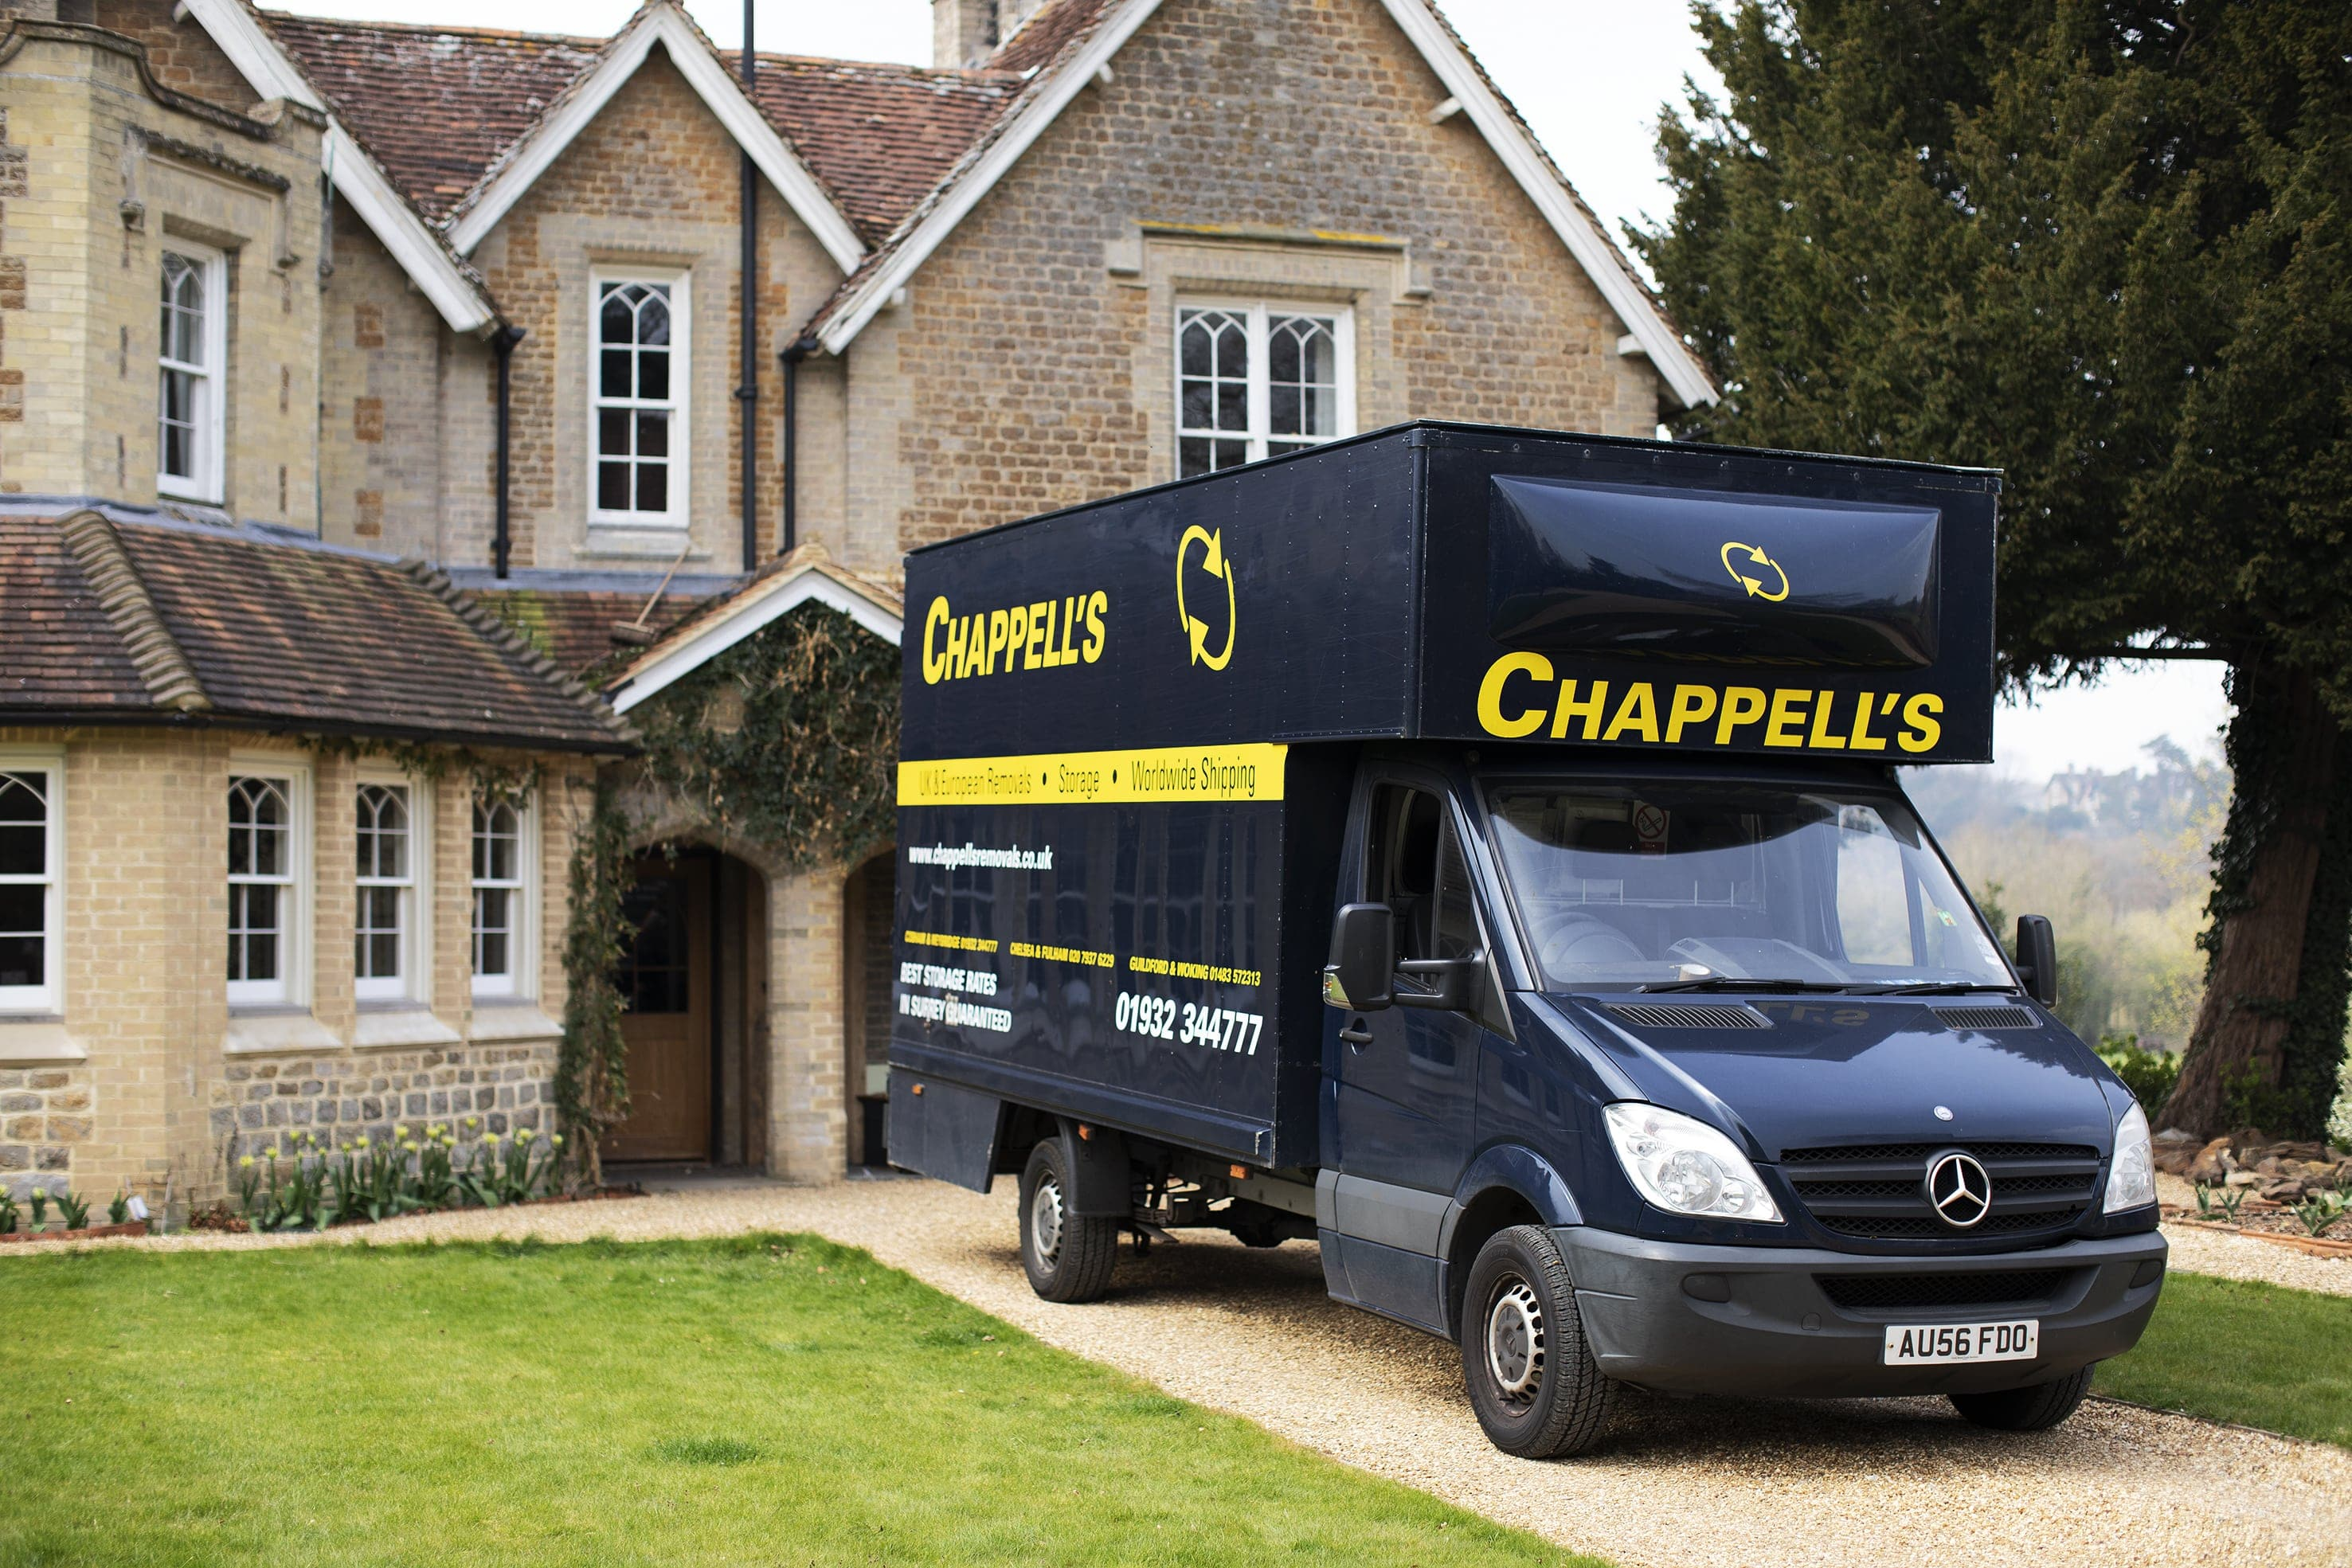 Welcome to the New Chappell's Website Image